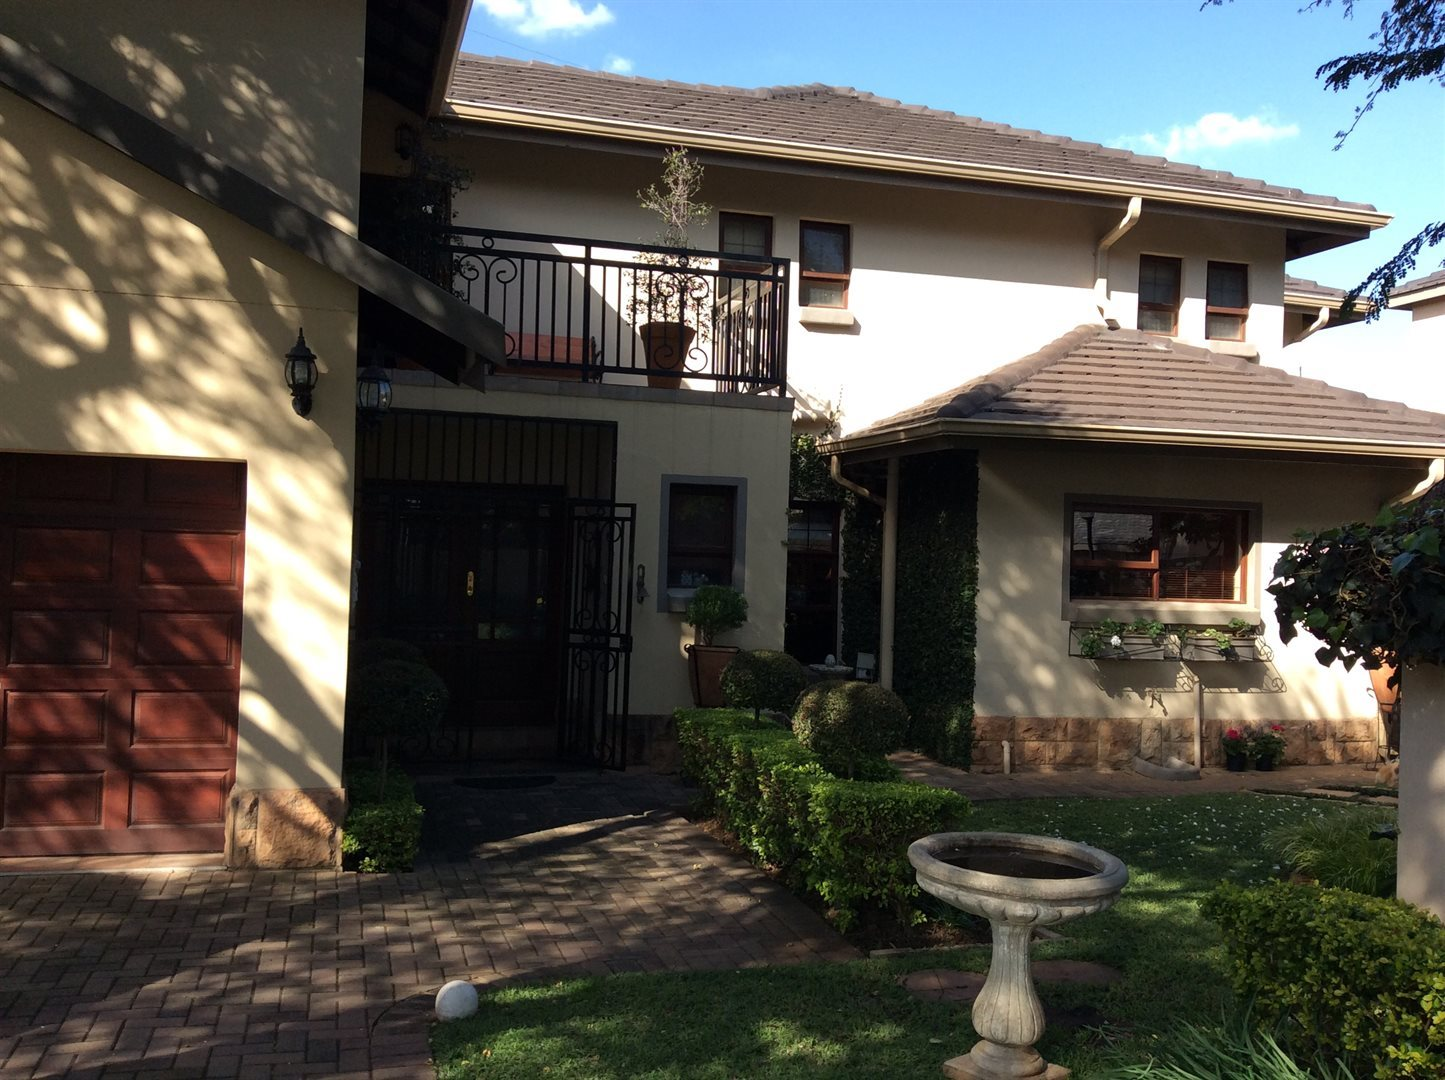 3 Bedroom House for sale in Montana Park ENT0074858 : photo#3